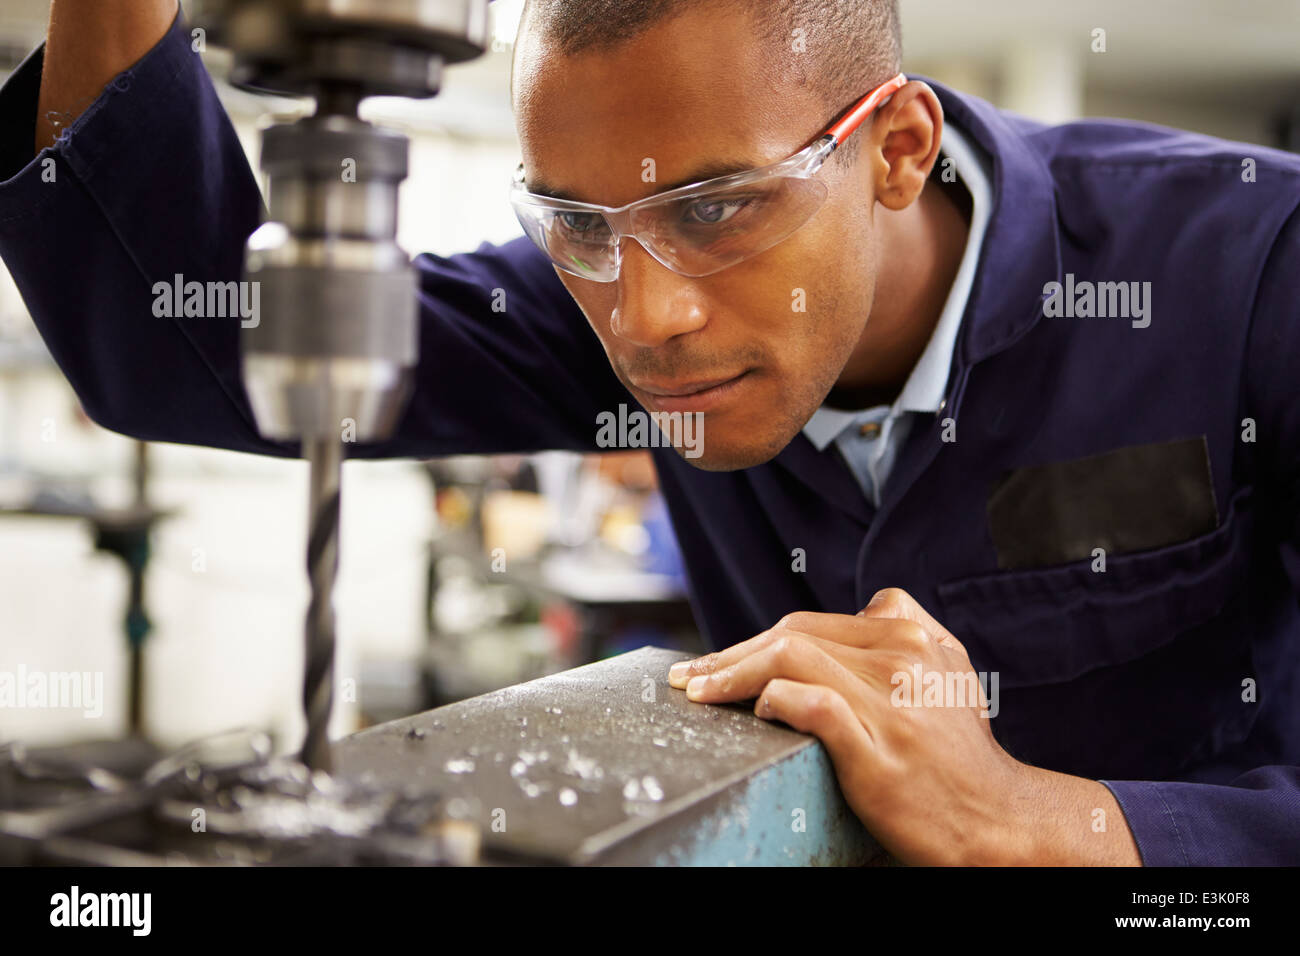 Apprentice Engineer Using Milling Machine - Stock Image